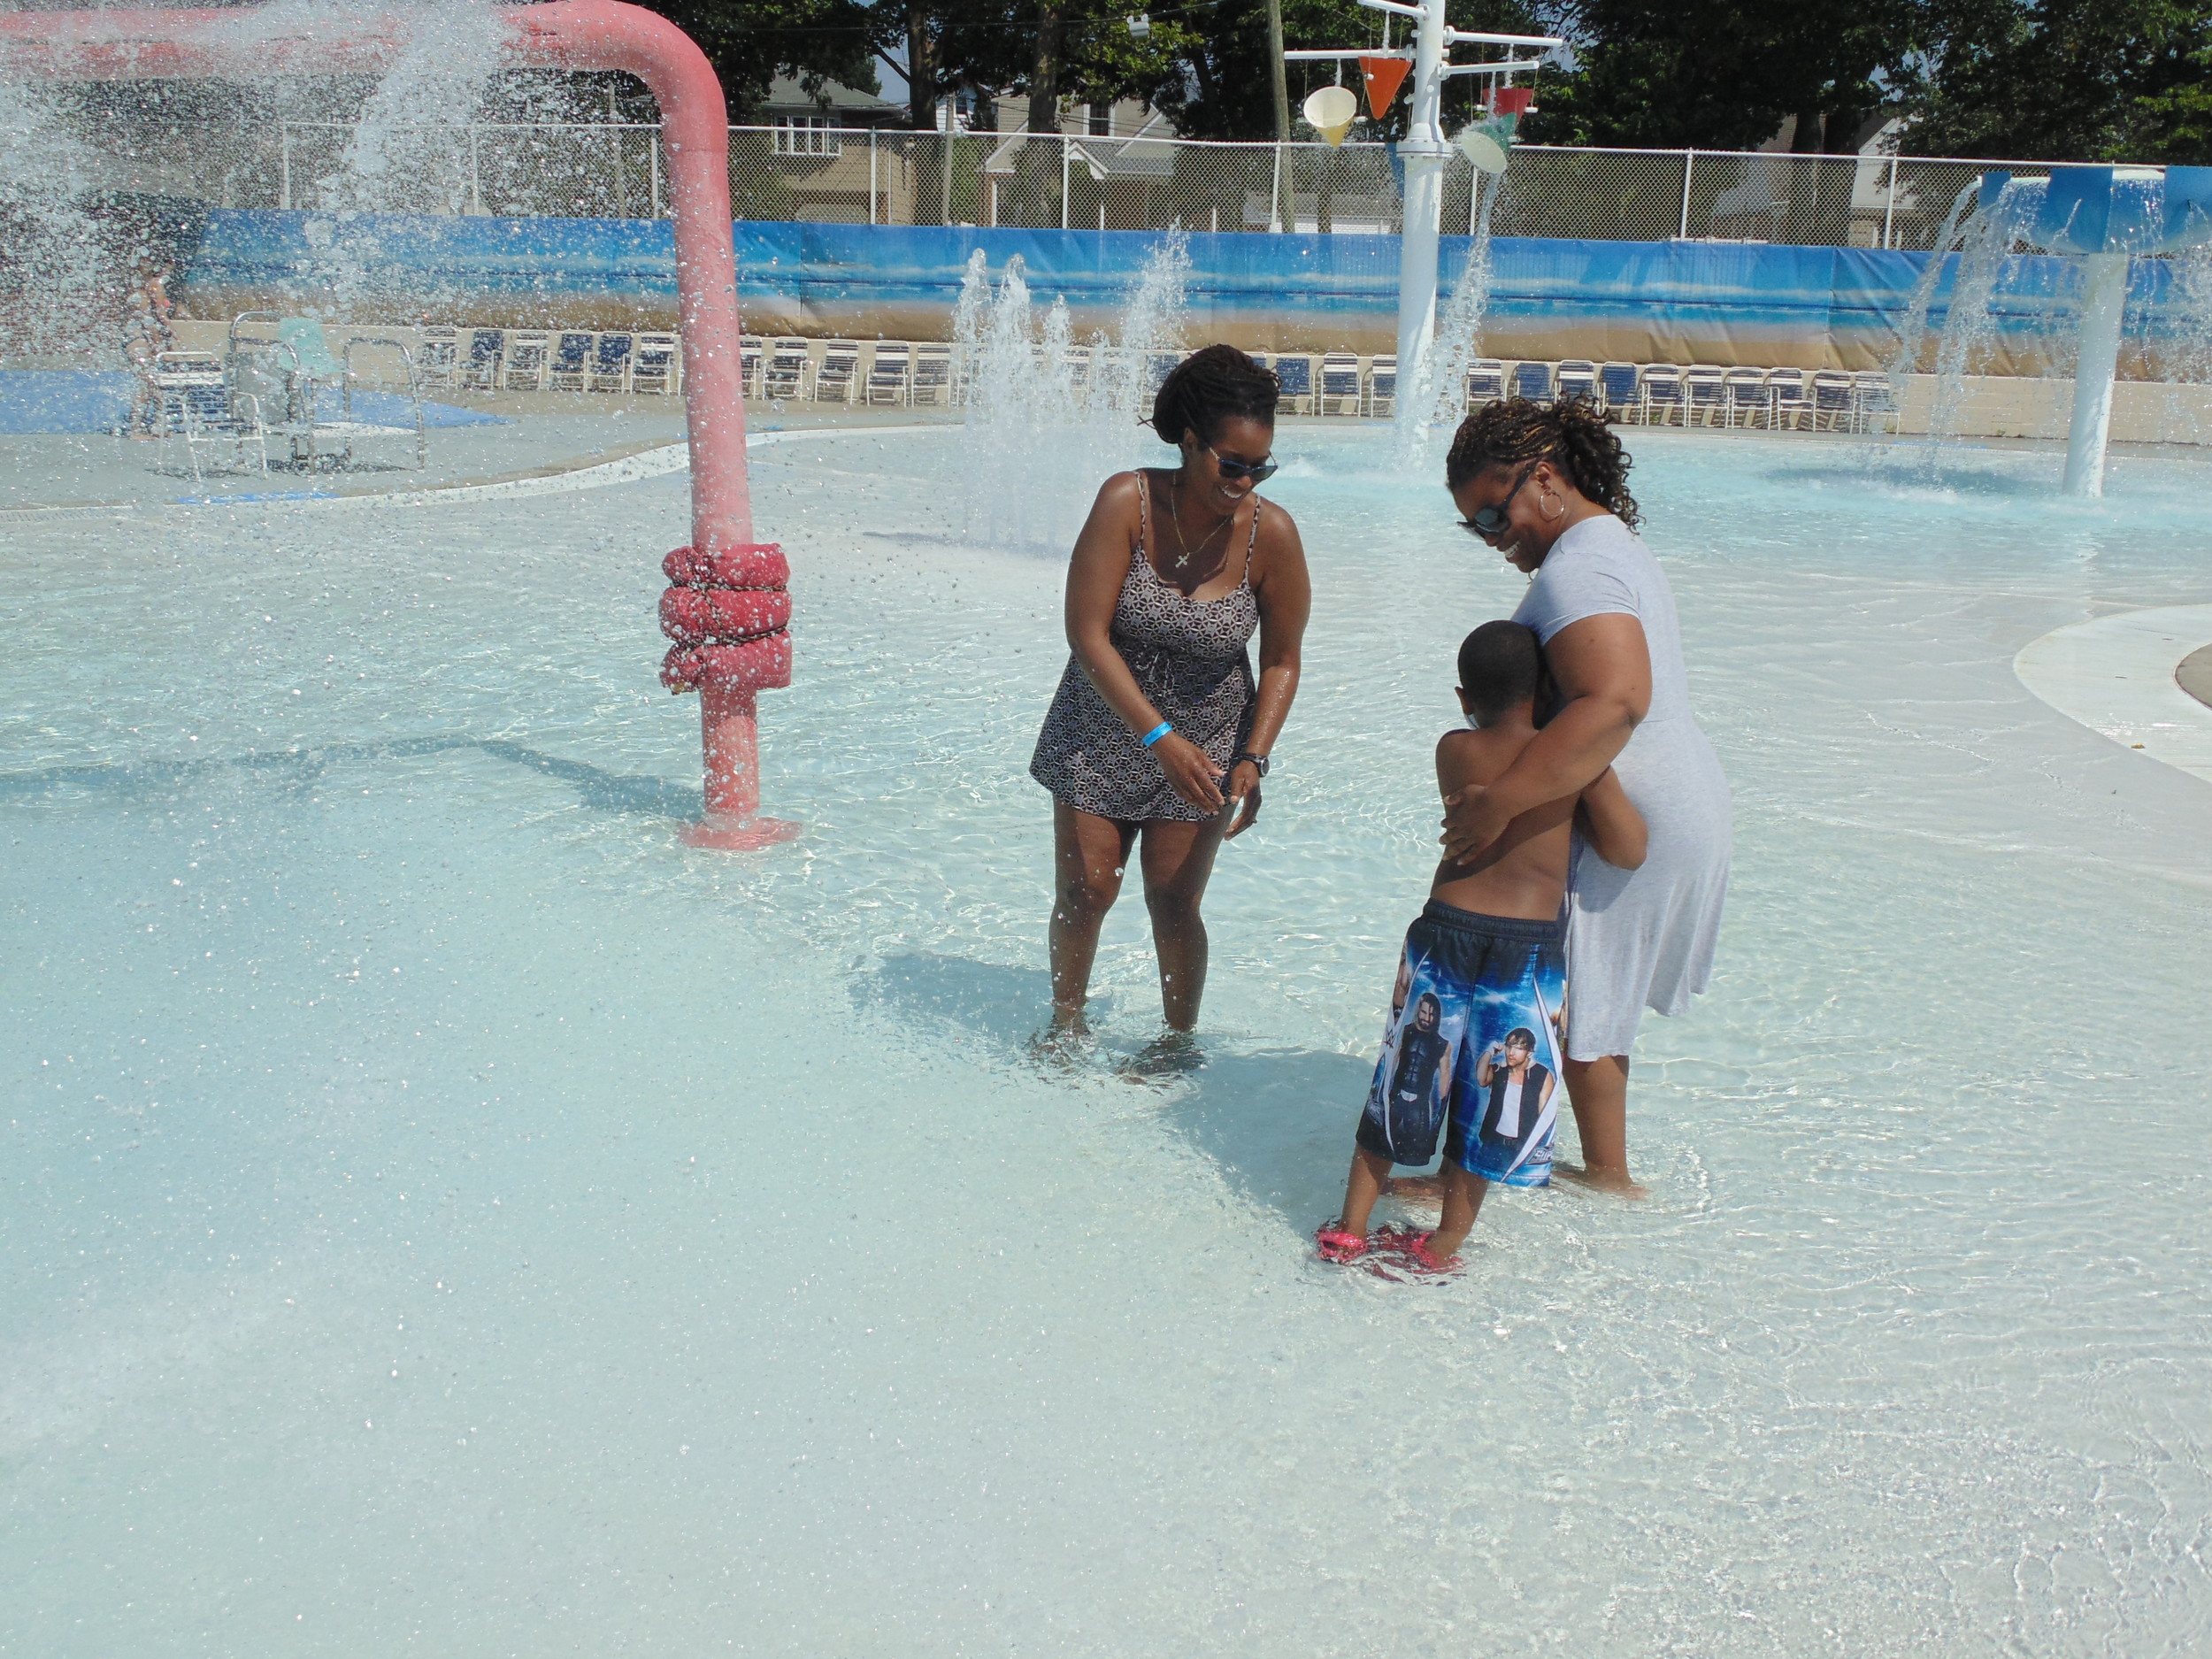 Dana Harden-Butts, right, brought her son into the interactive pool.